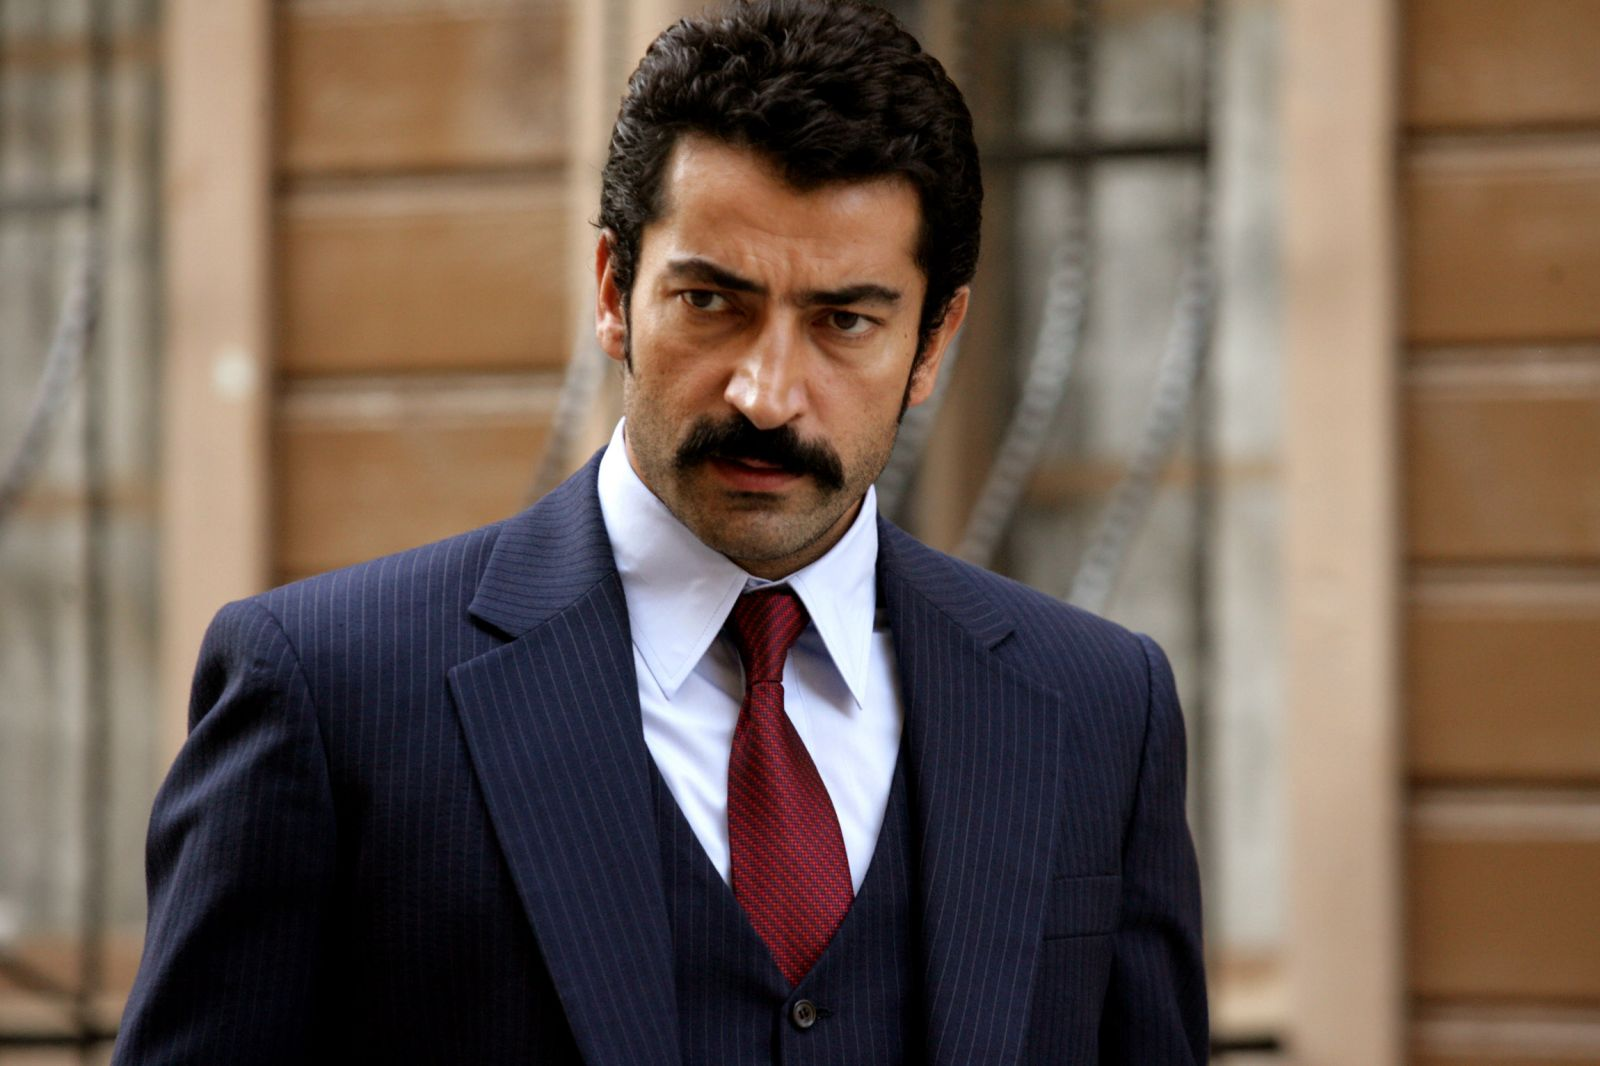 The 42-year old son of father Mustafa İmirzalıoğlu and mother Yıldız İmirzalıoğlu, 193 cm tall Kenan Imirzalioglu in 2017 photo